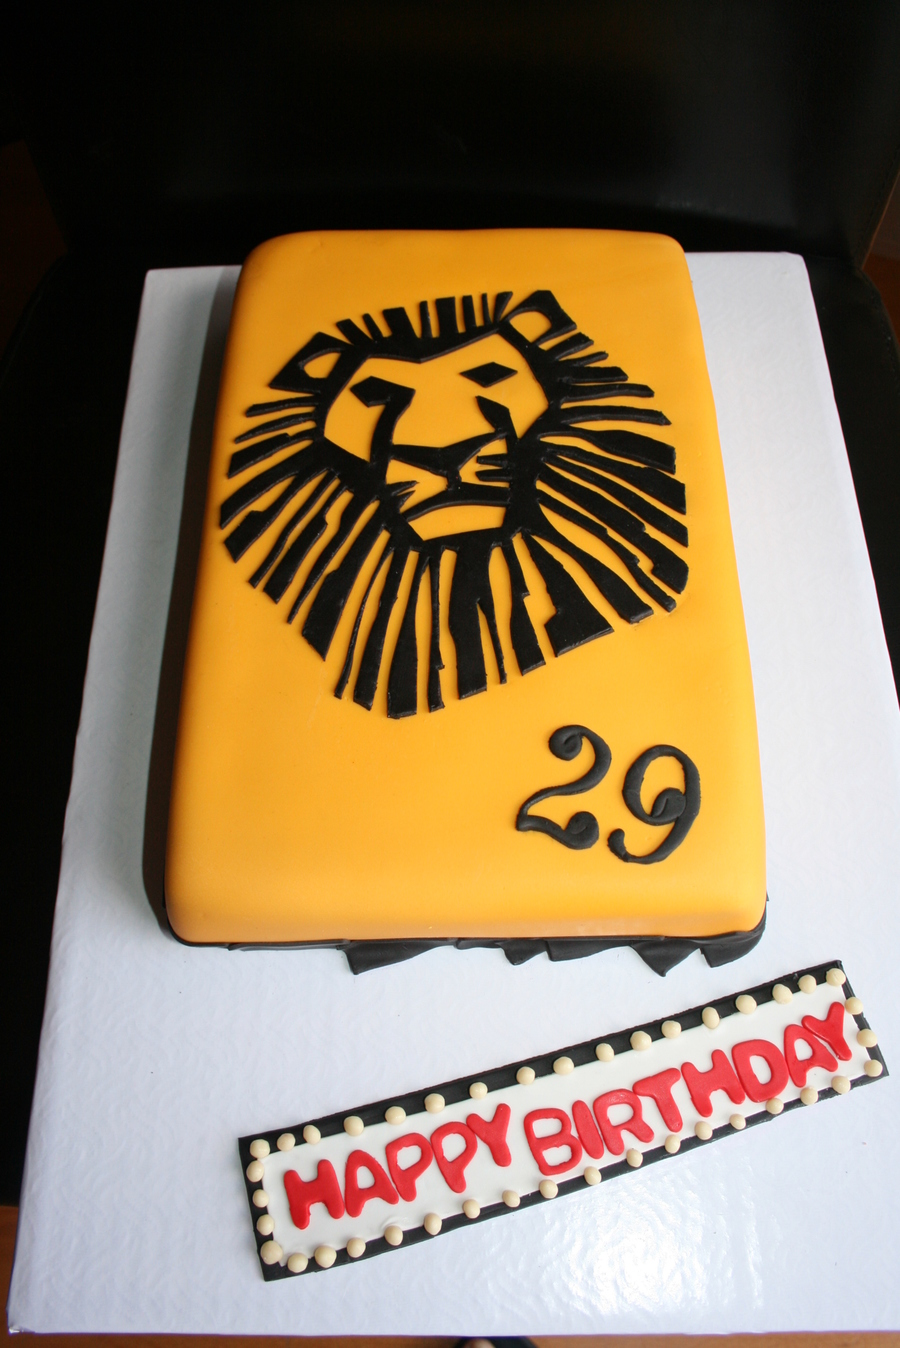 This Lion King Cake Based On The Broadway Playbill Was Entirely Hand Cut Was Super Happy With The Turnout But It Took Way More Time Than on Cake Central